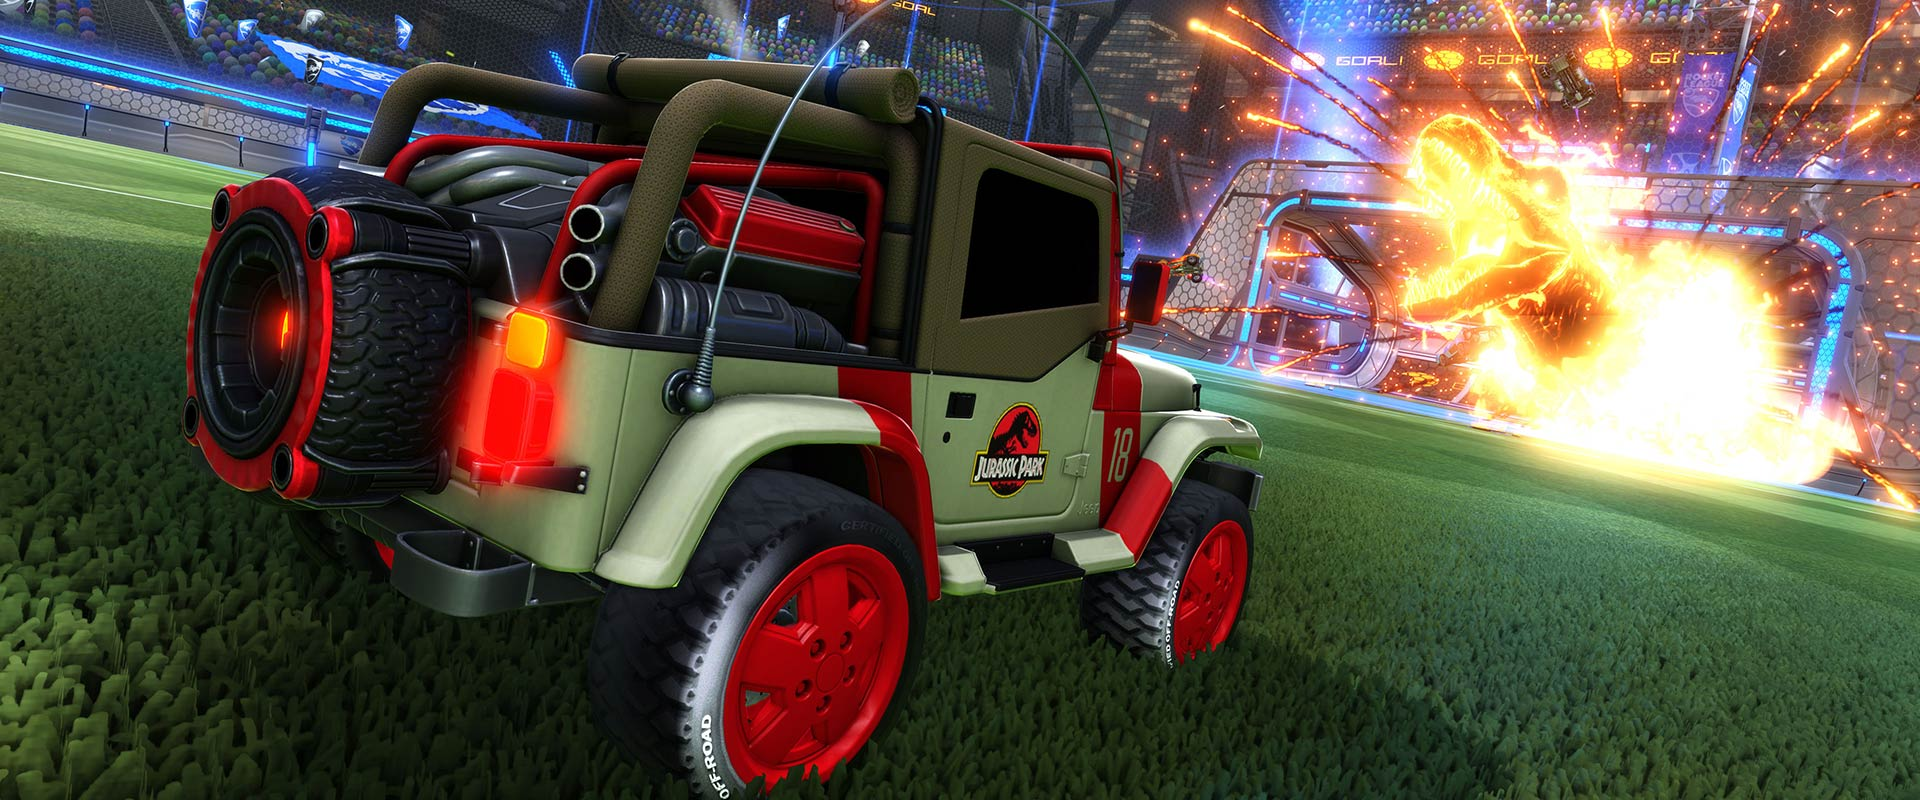 http://www.universalbranddevelopment.com/storage/businesses-games-projects-jw-rocketleague-banner-5c11b21902d97.jpg